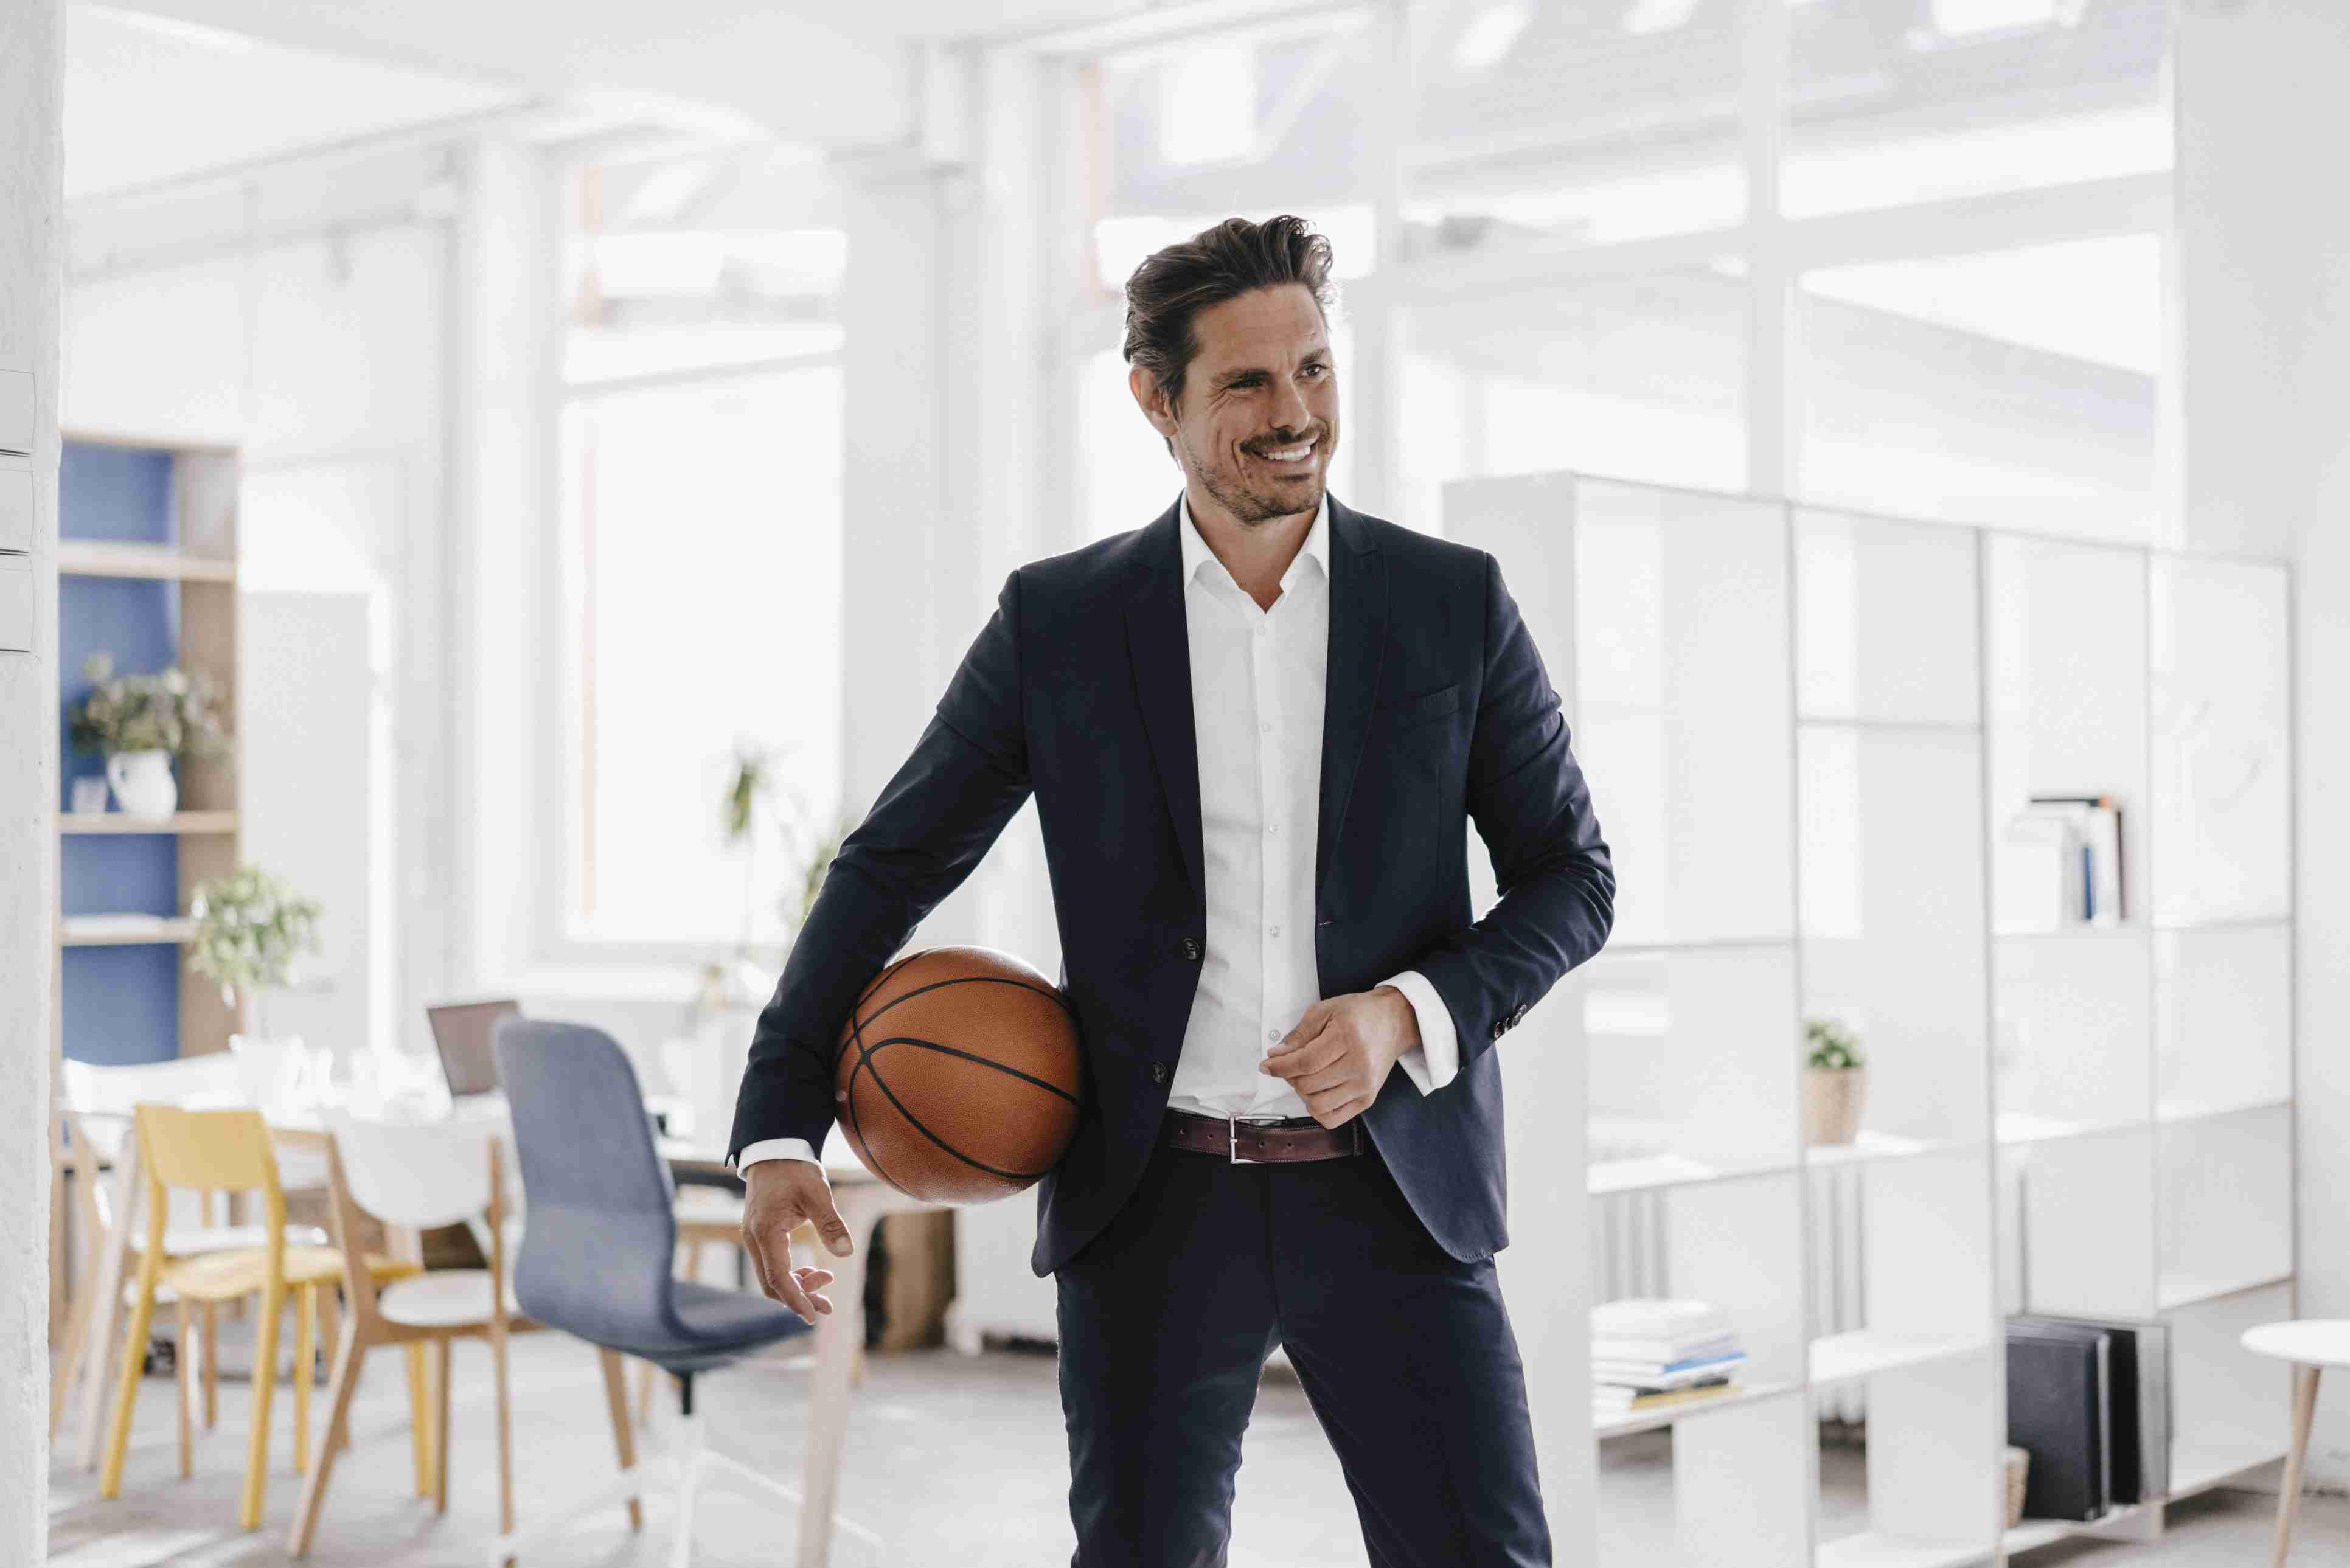 Businessman holding basketball in office